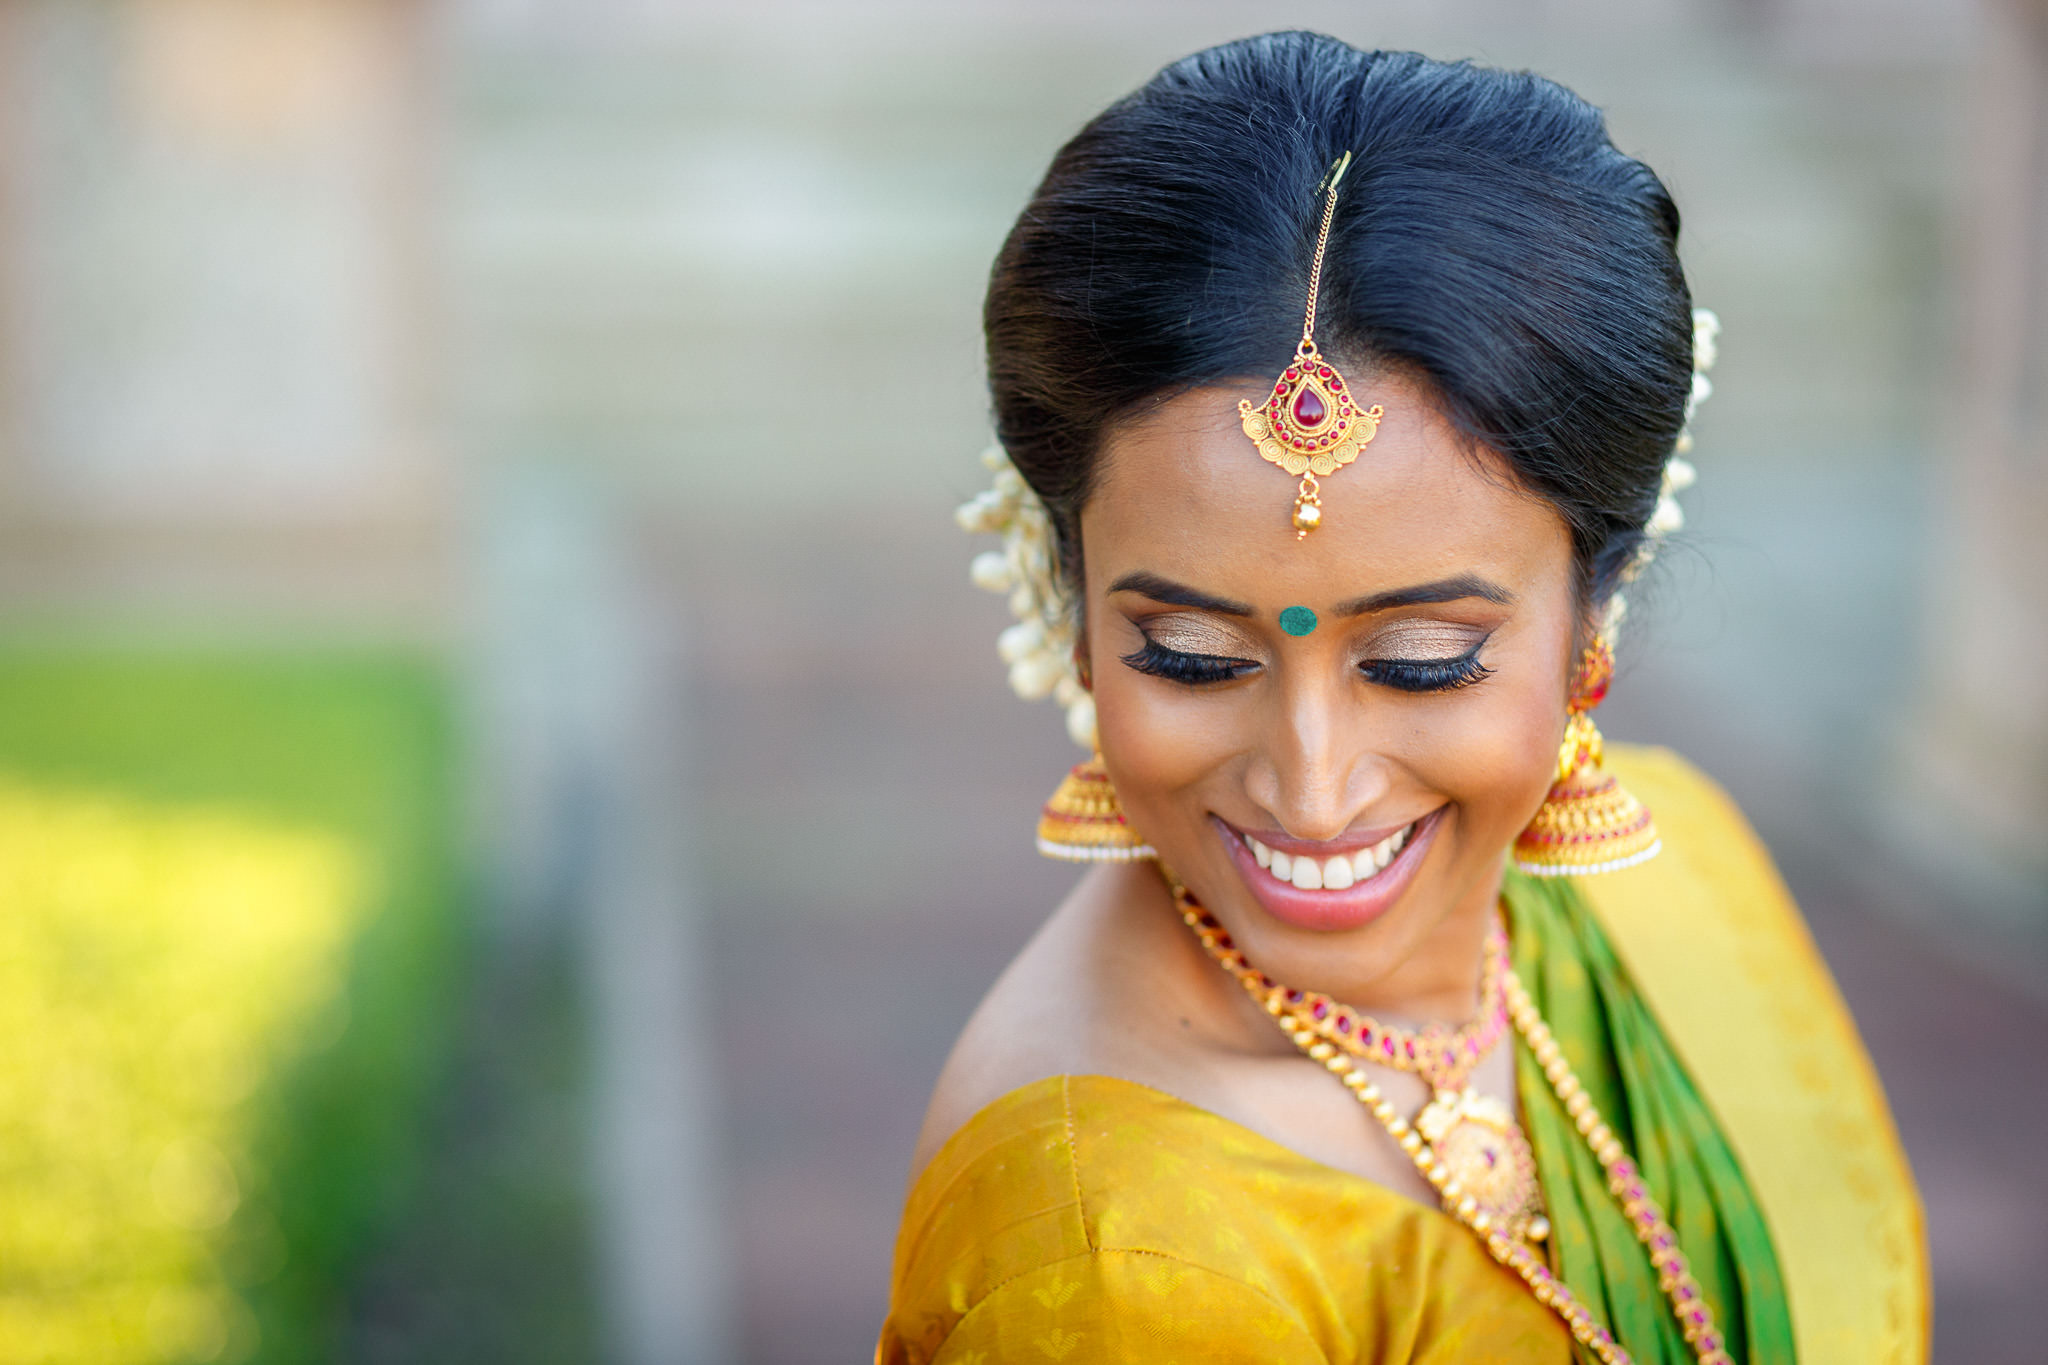 Asian Wedding Photographer London portrait of the bride in sari